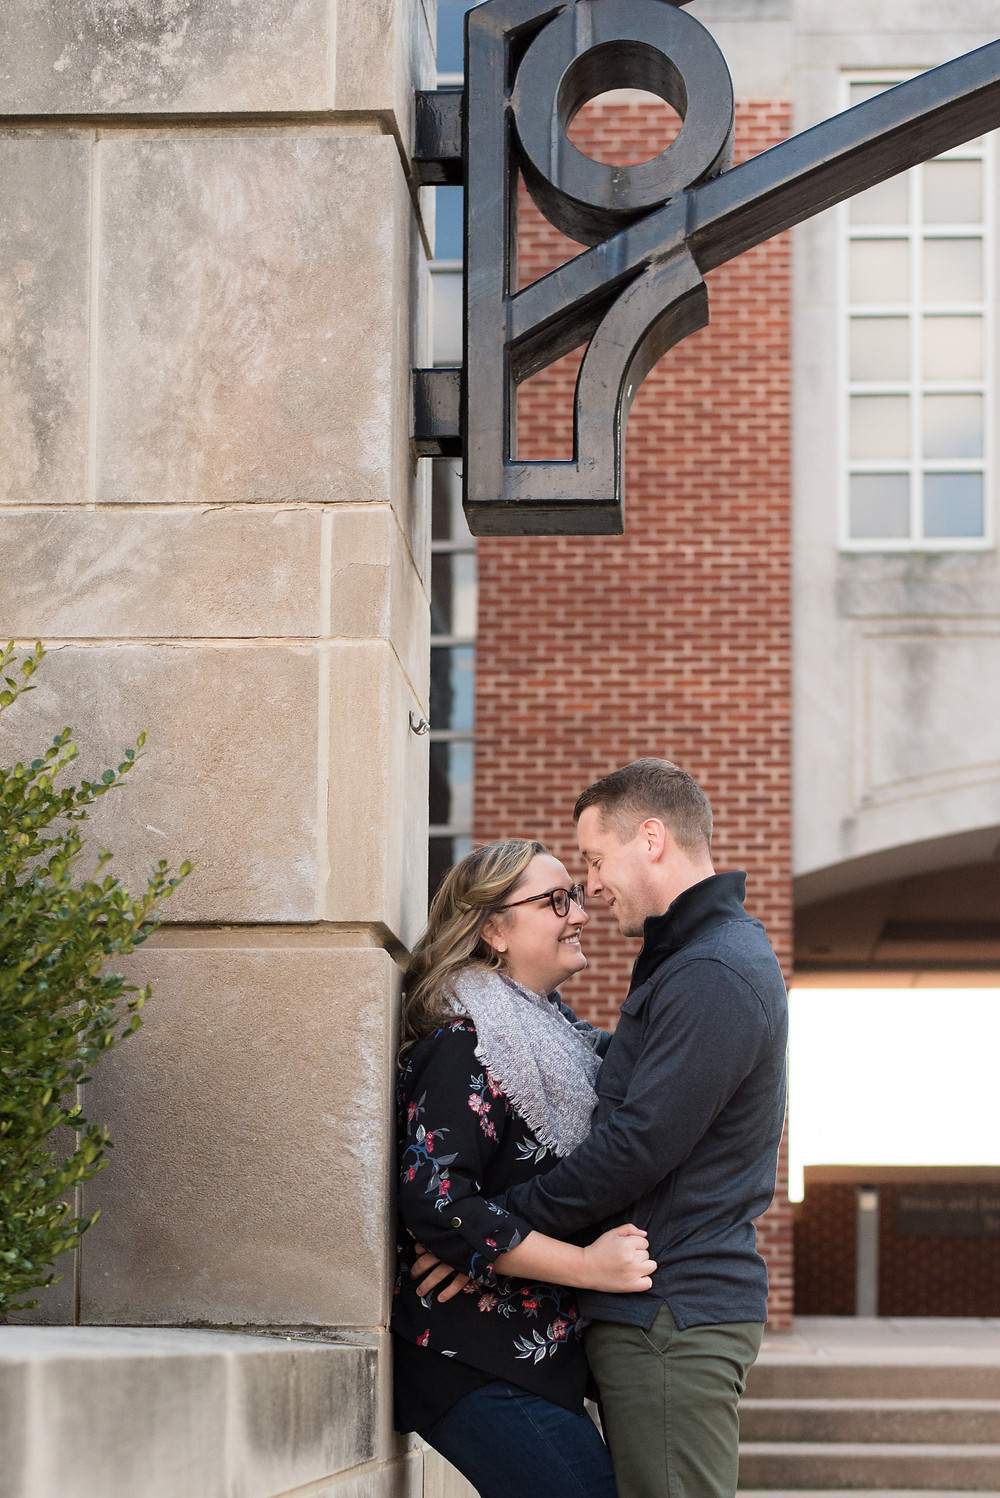 Engagement photos at your college where your love story unfolded and you will feel comfortable and at ease Lebanon Valley College Pennsylvania